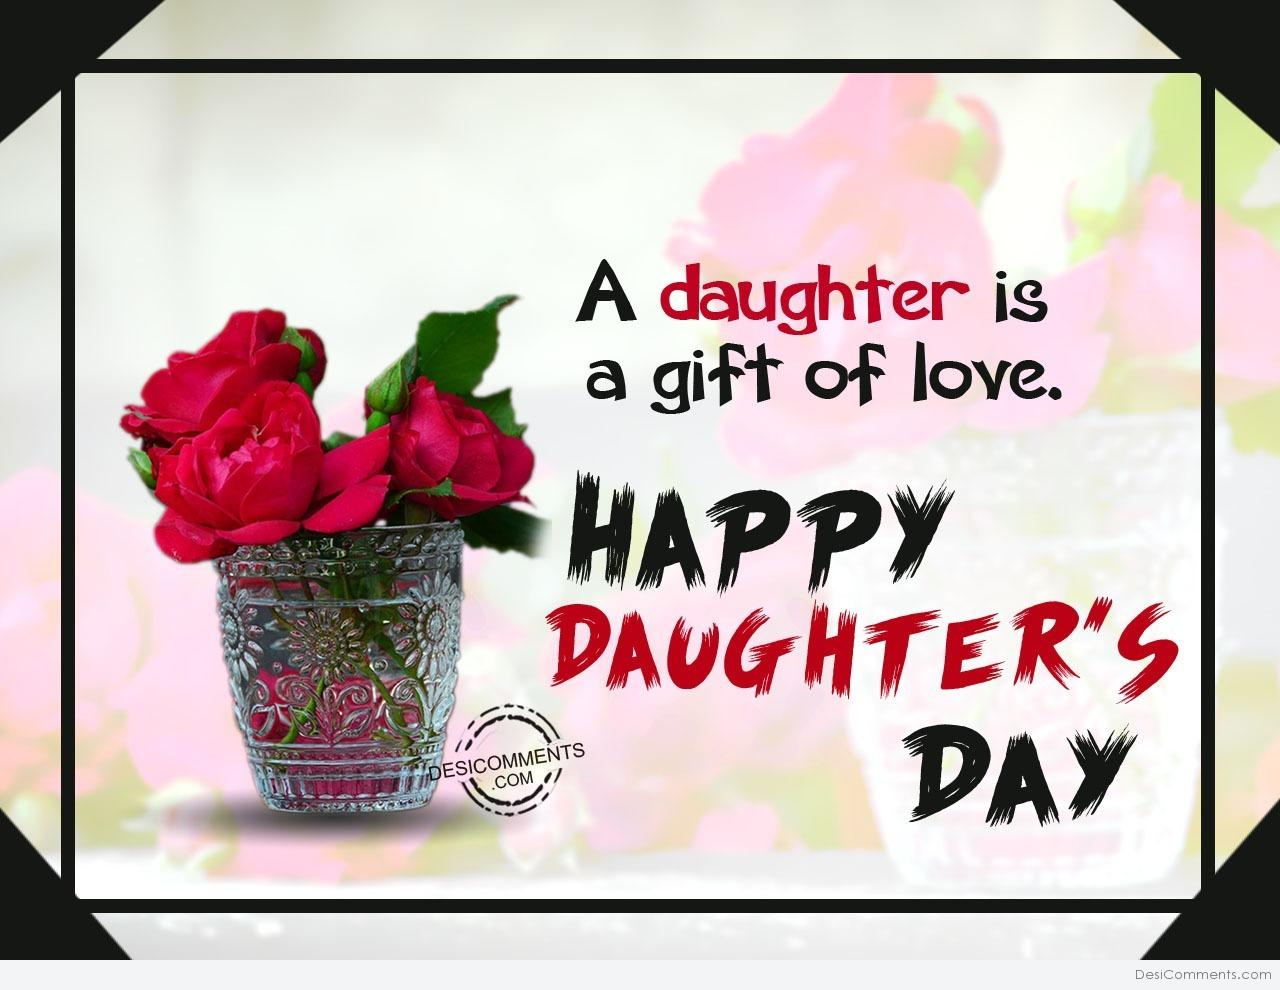 Daughters day pictures images graphics picture a daughter is gift of love happy daughters day m4hsunfo